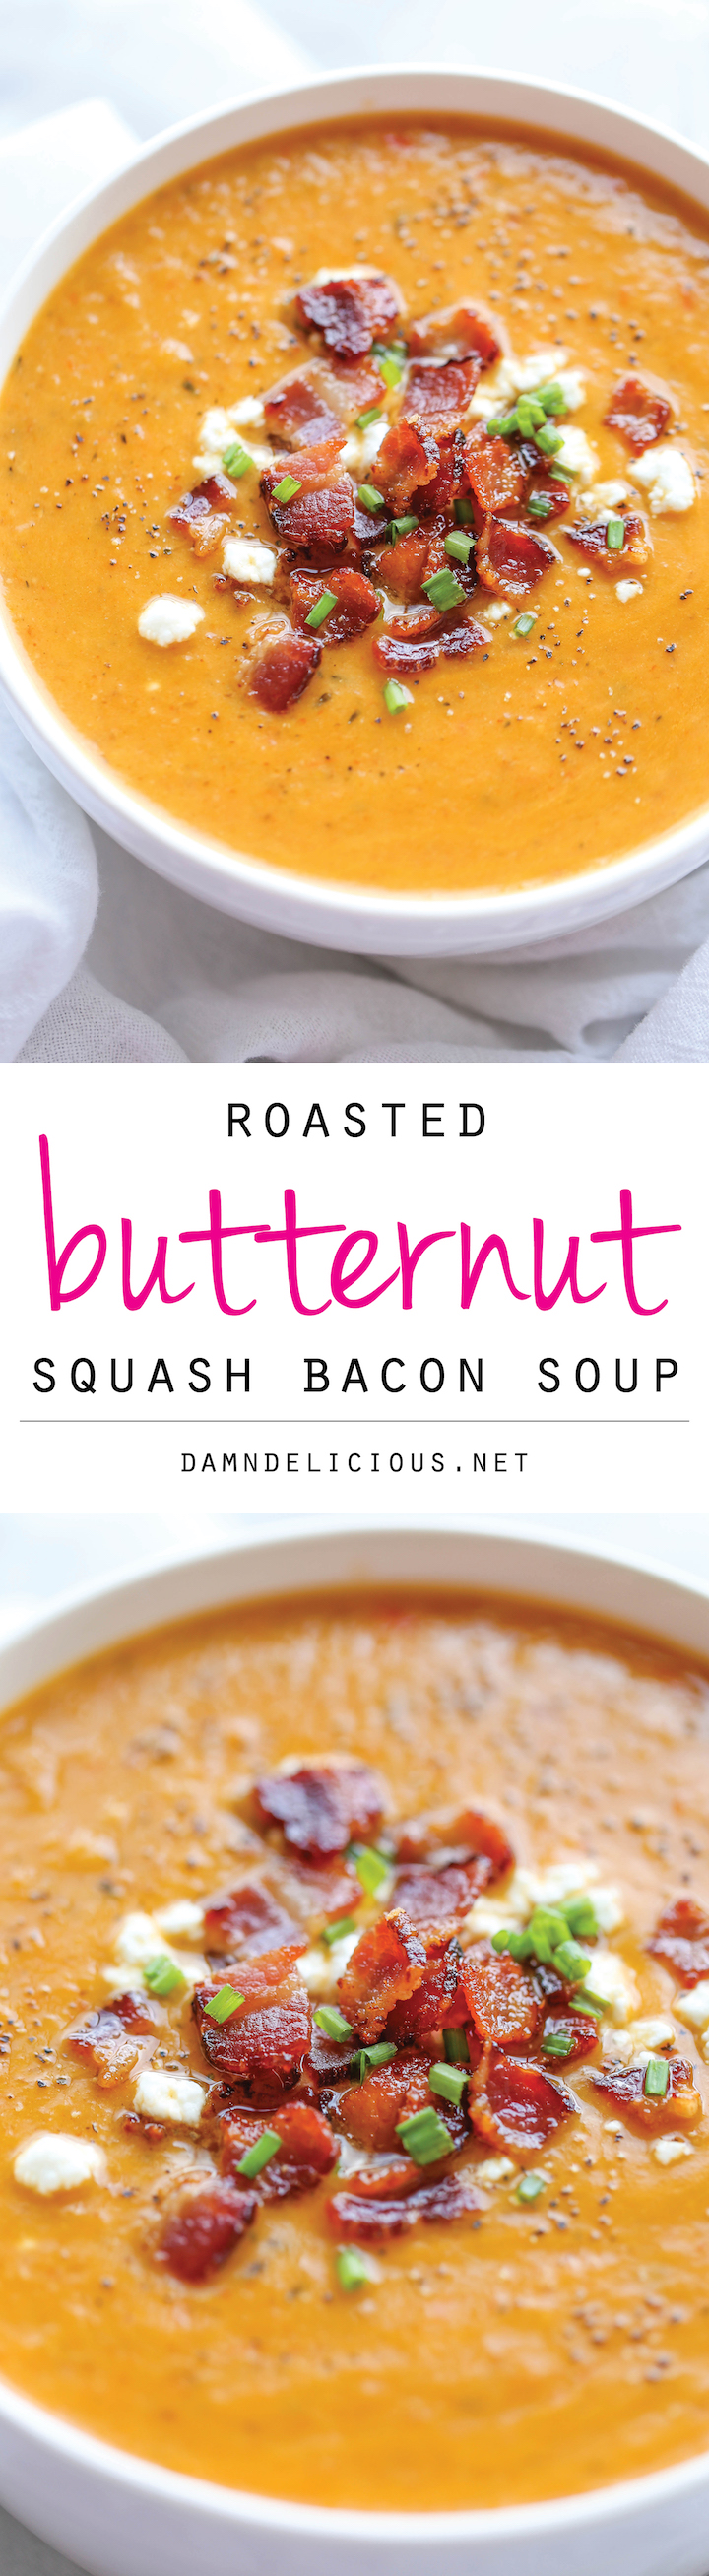 Roasted Butternut Squash and Bacon Soup - By far the best butternut squash soup ever, with the help of those crisp bacon bits blended right into the soup!